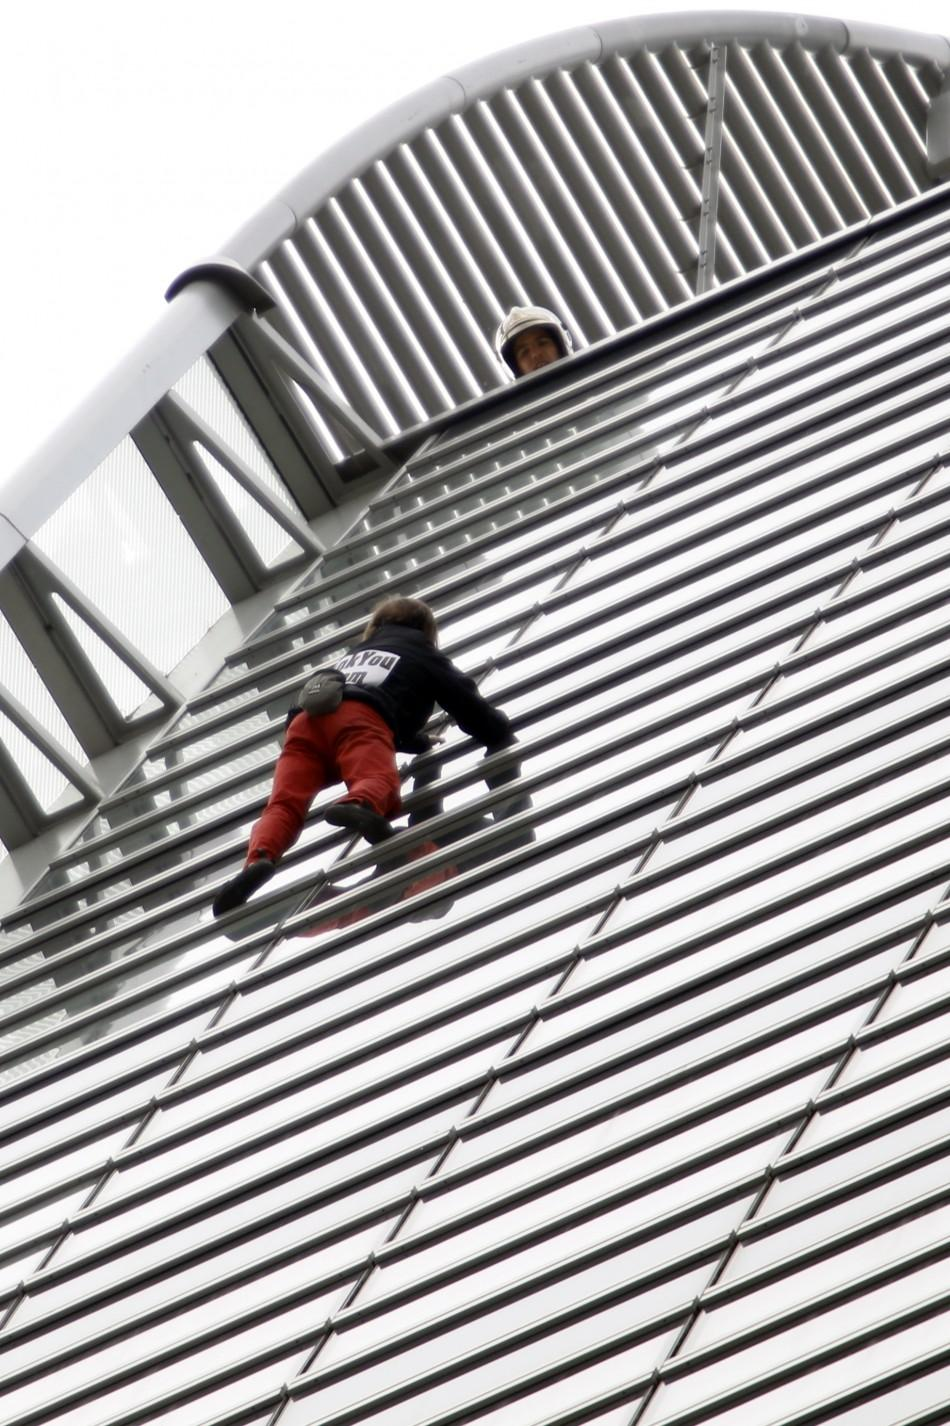 French climber Alain Robert scales the 185 metre GDF Suez Tower at the La Defense business district